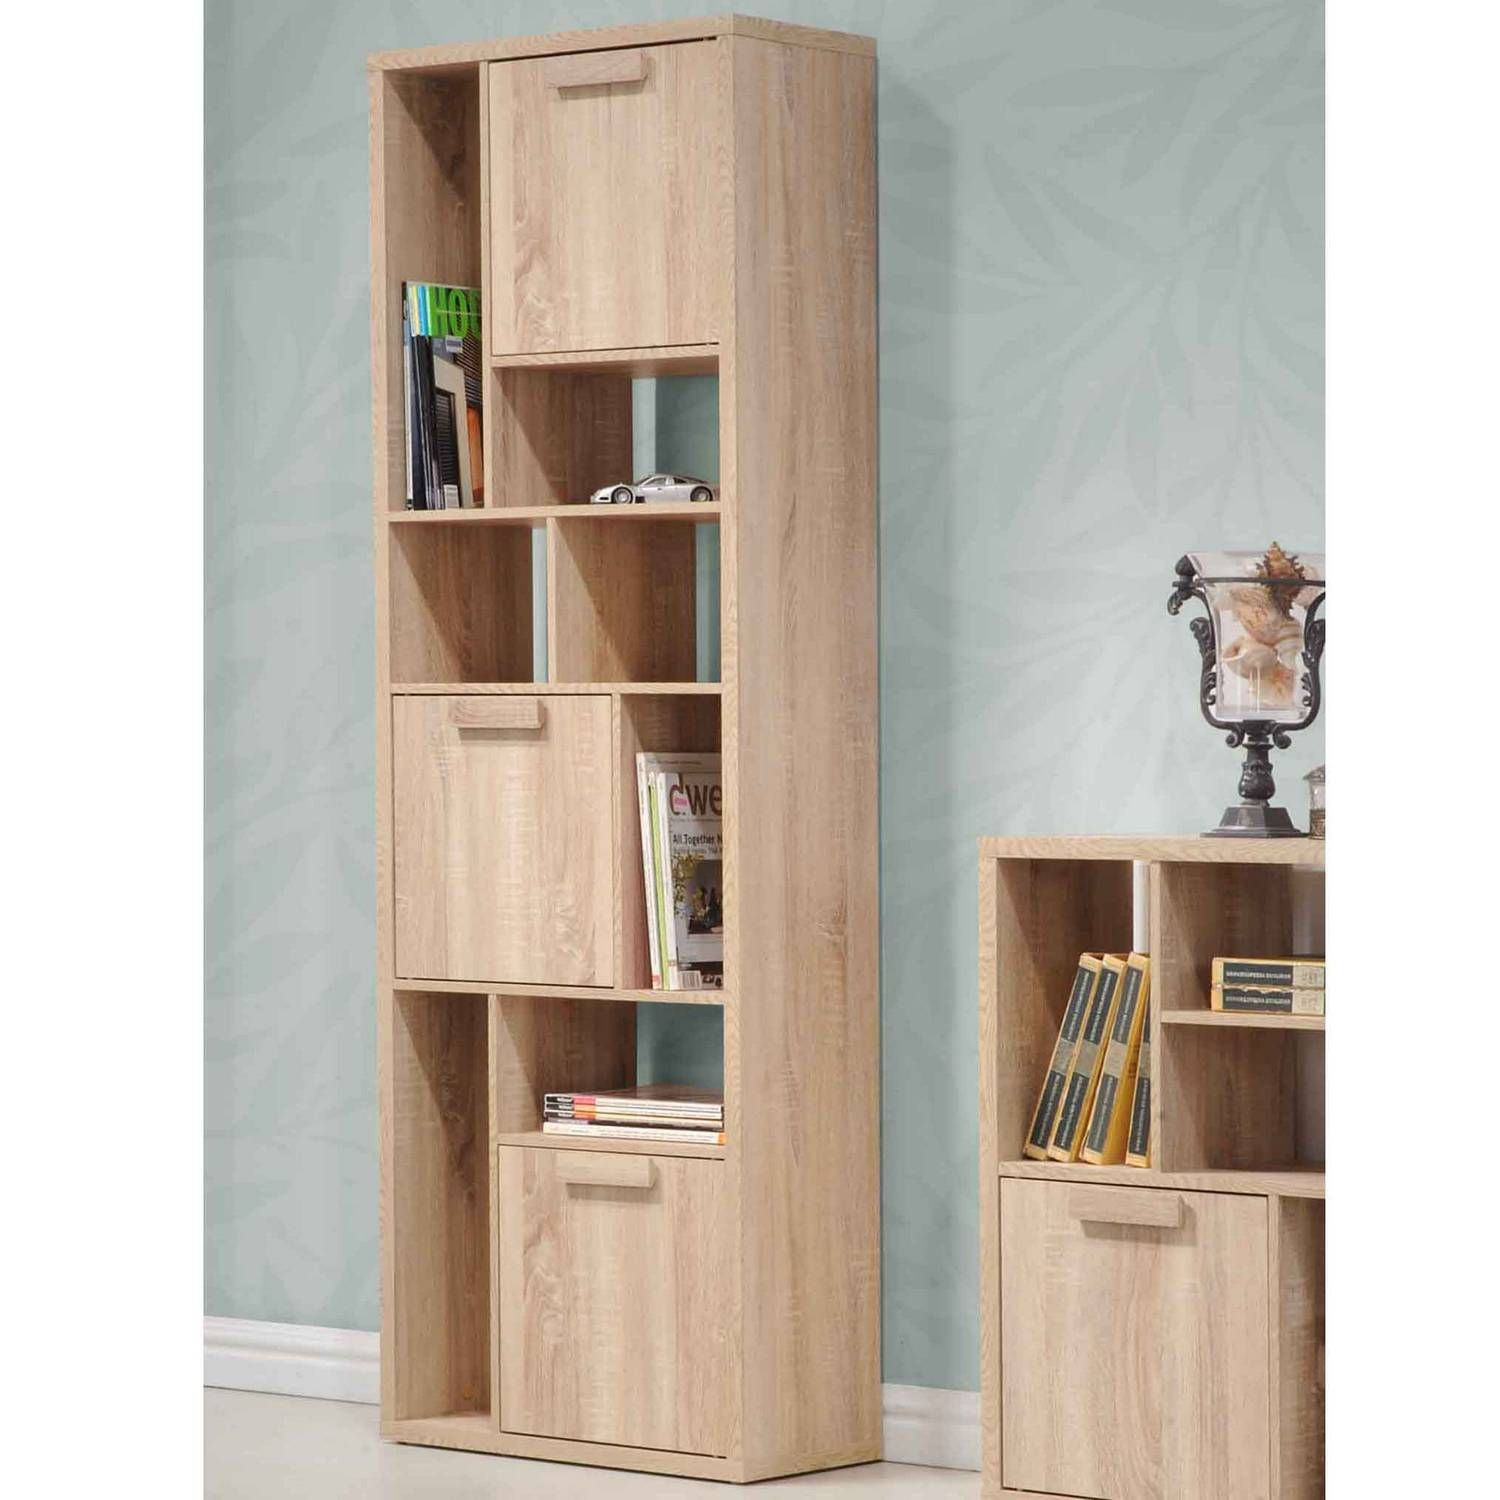 The Range Living Room Furniture Apollo 3 Door Shelf Unit Furniture The Range House